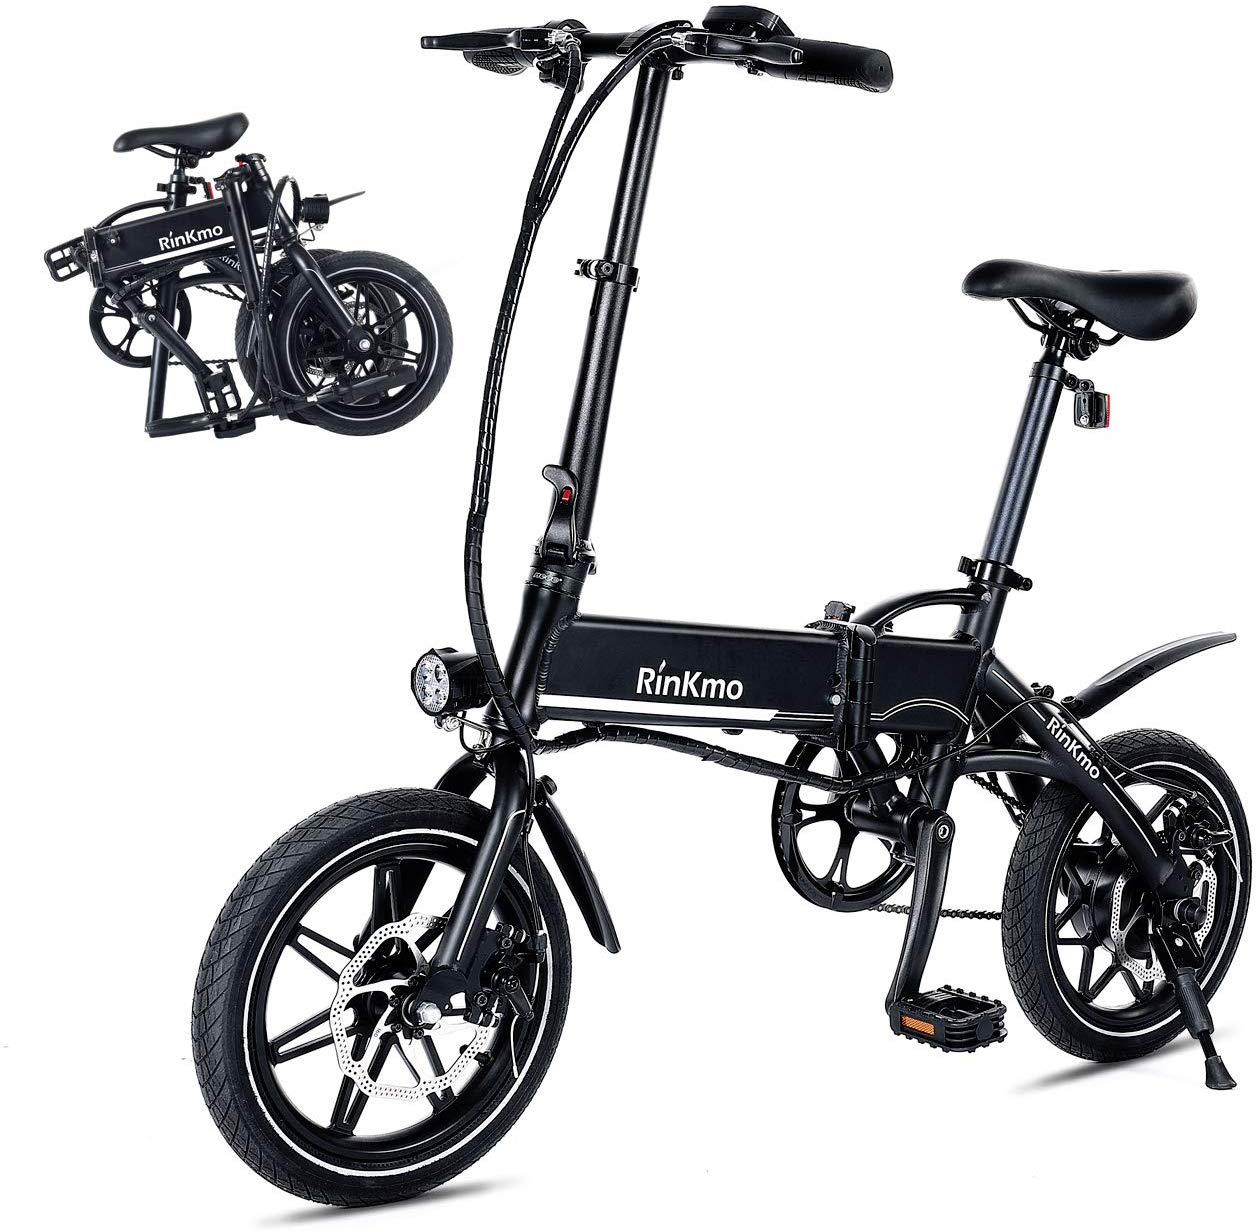 10 Best 250 350 Watt Electric Bikes In